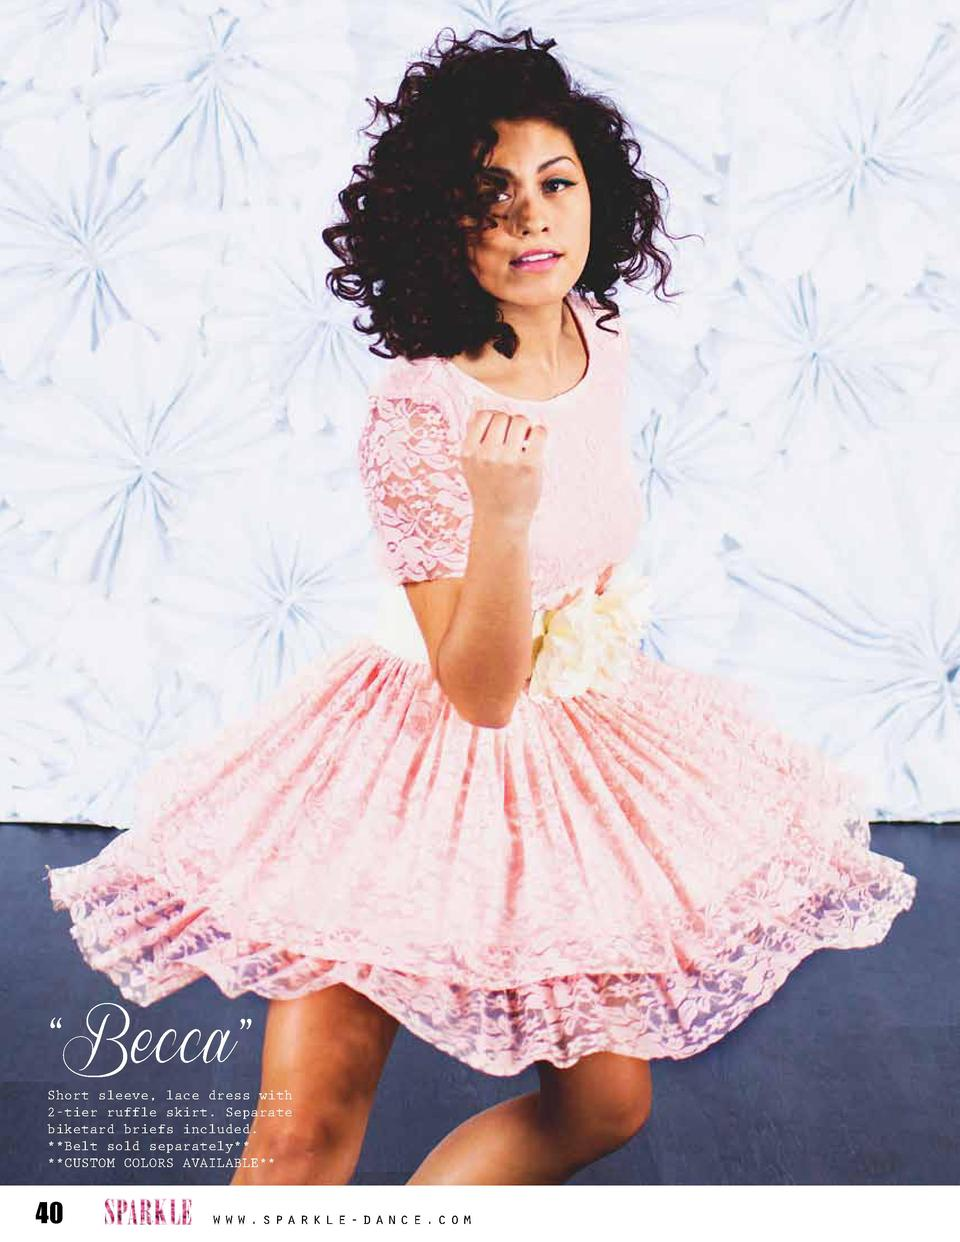 Becca     Short sleeve, lace dress with 2-tier ruffle skirt. Separate biketard briefs included.   Belt sold separately ...